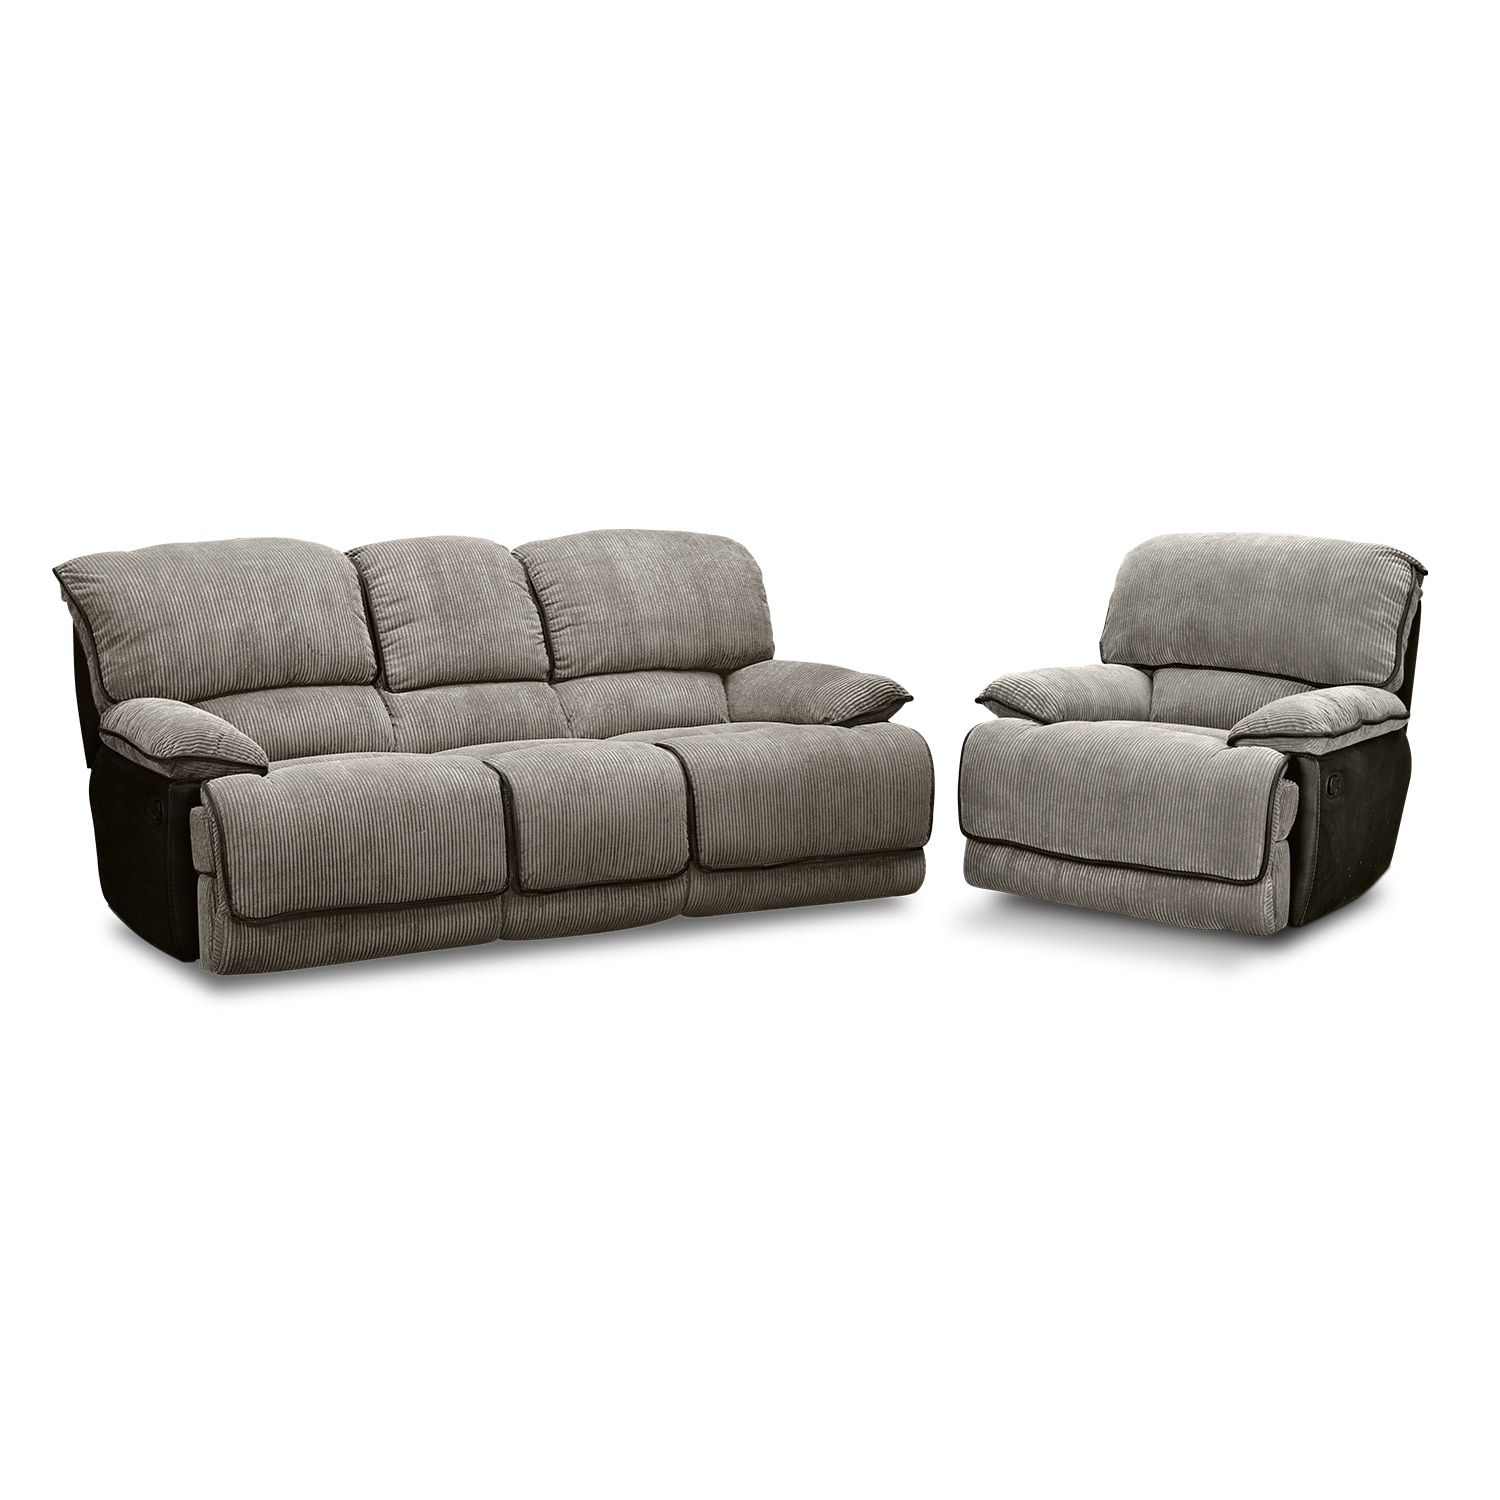 Living Room Furniture - Laguna II 2 Pc. Reclining Living Room w/Glider Recliner